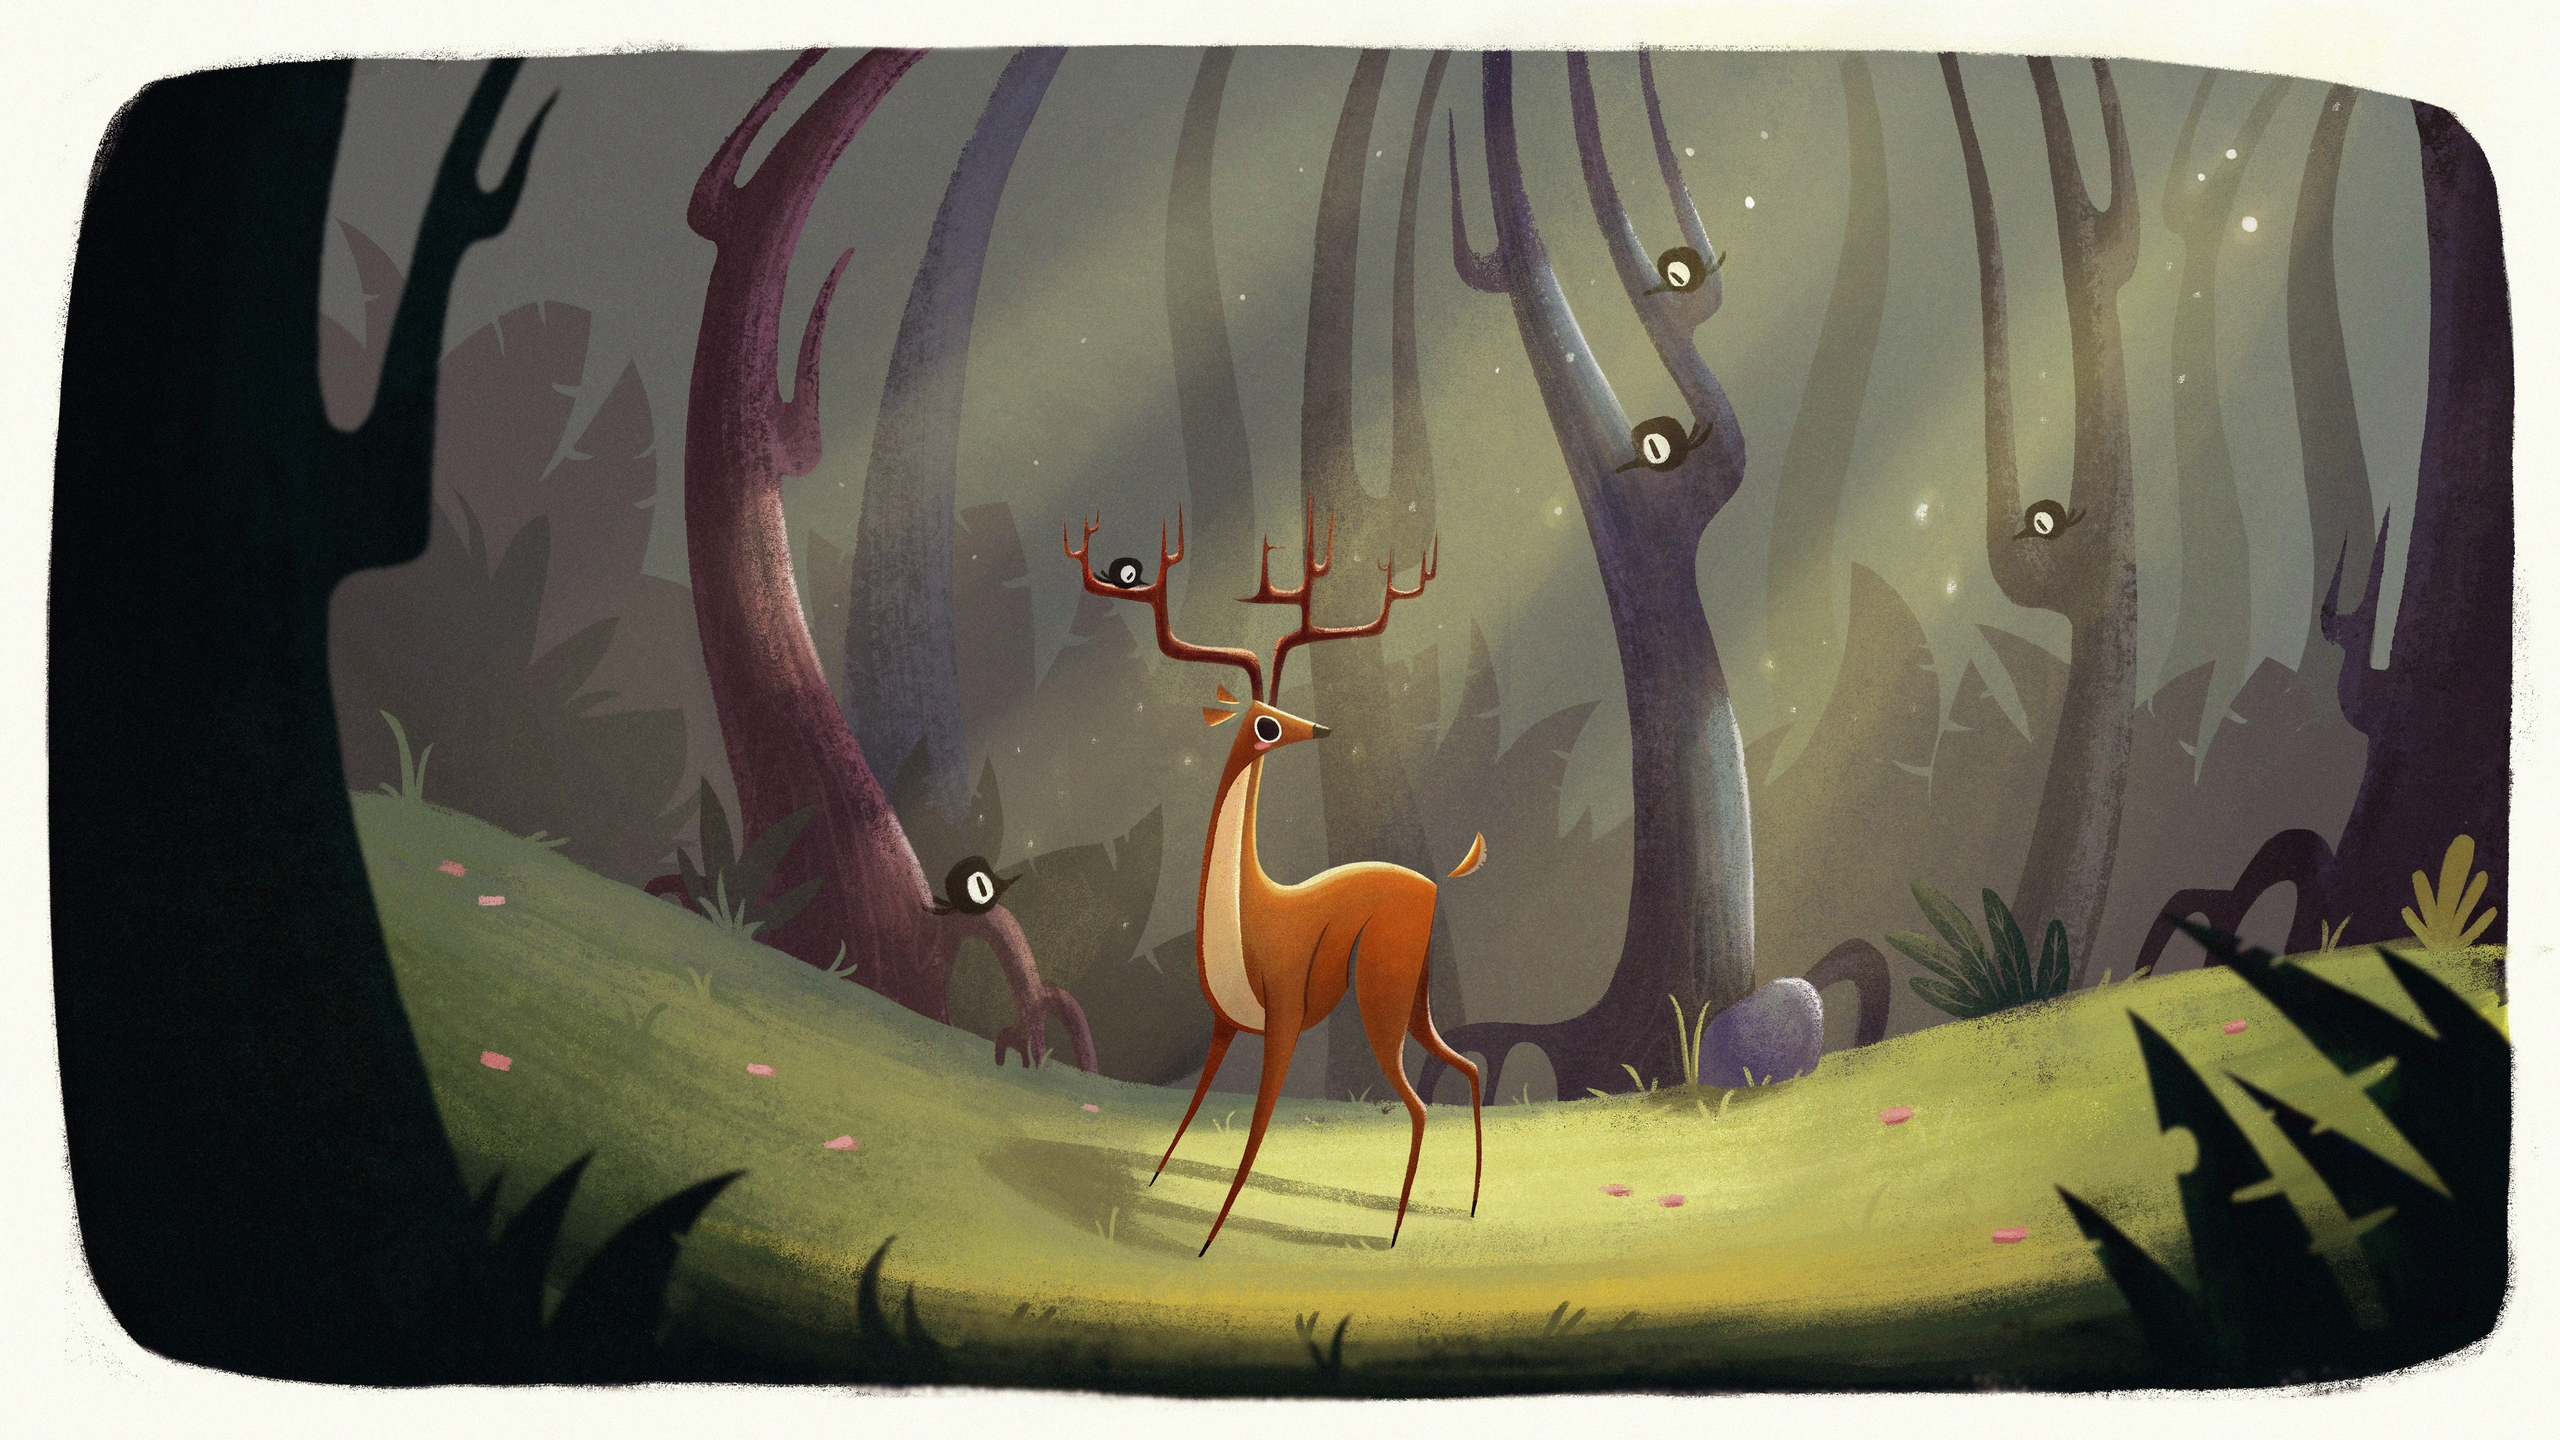 Deer - deer, woods, environment - ashleyodell | ello